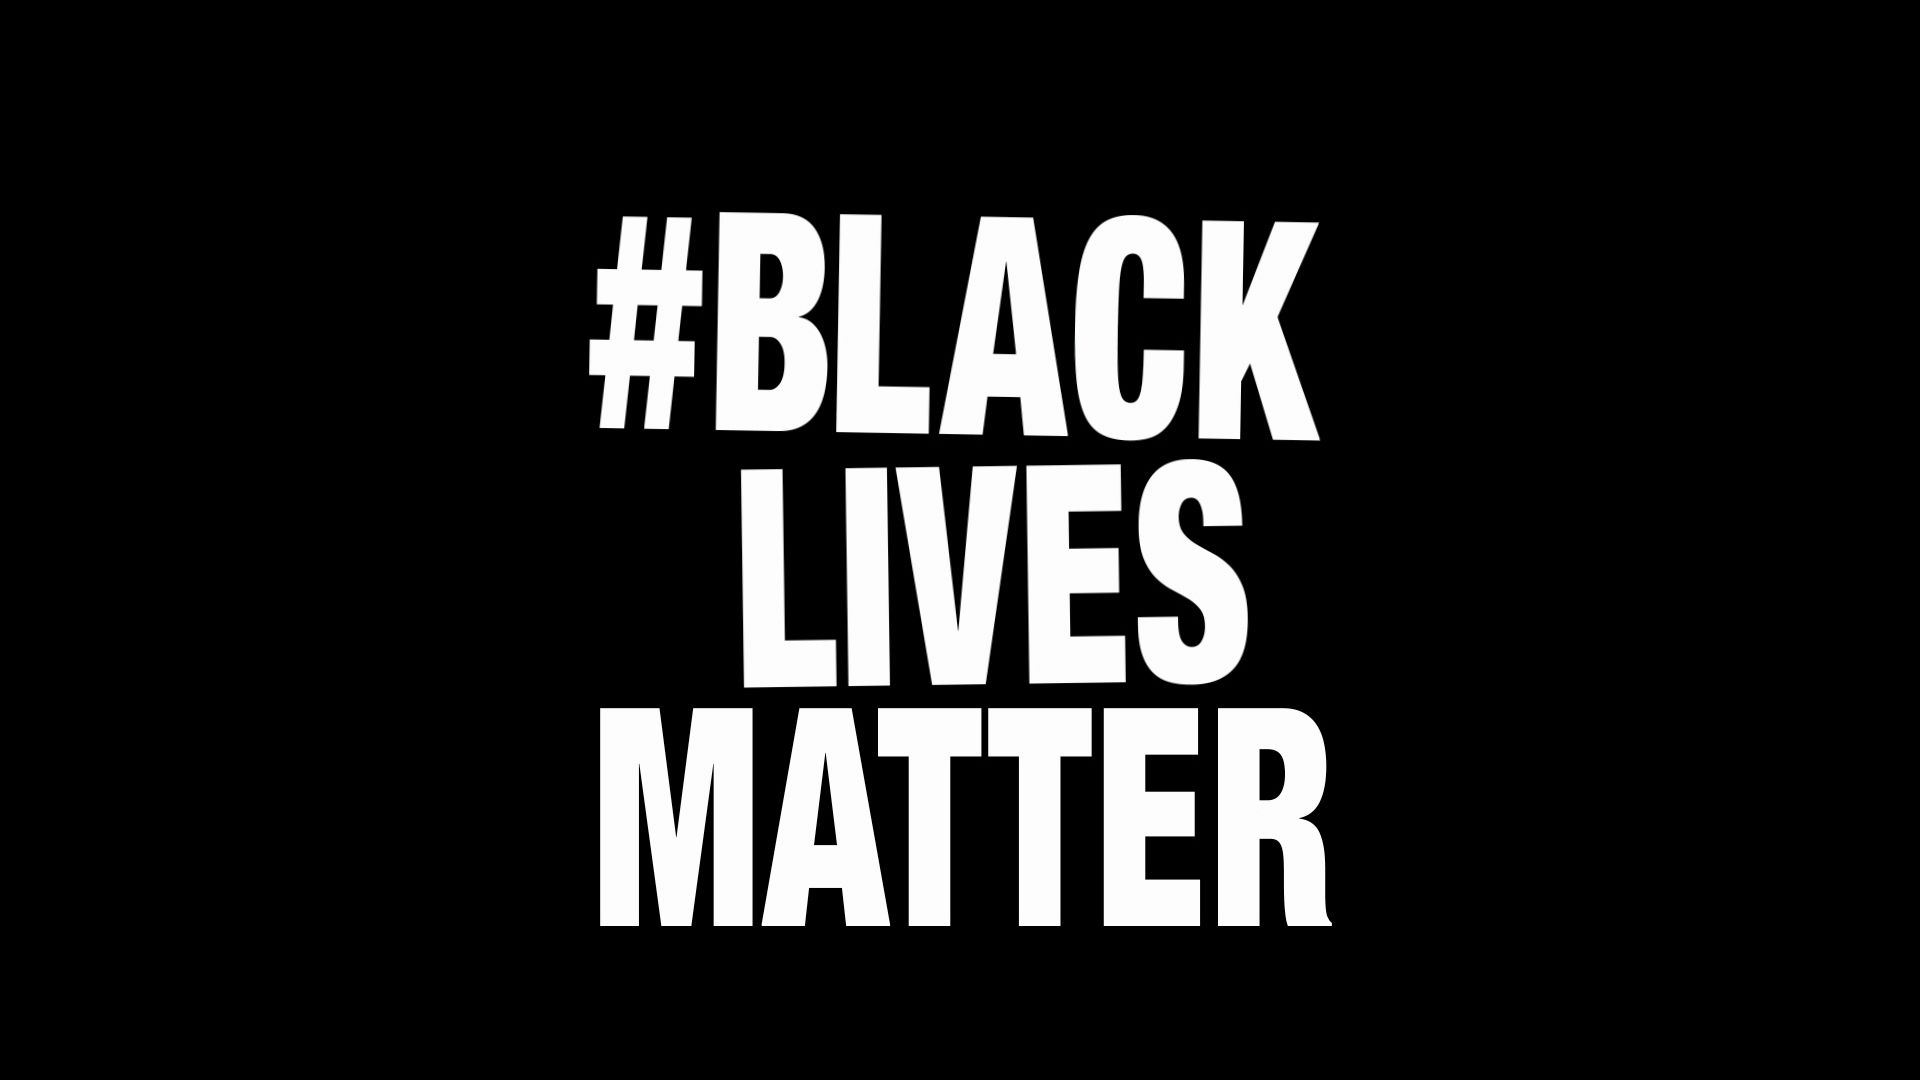 Black Lives Matter Wallpaper 06 (1920x1080)